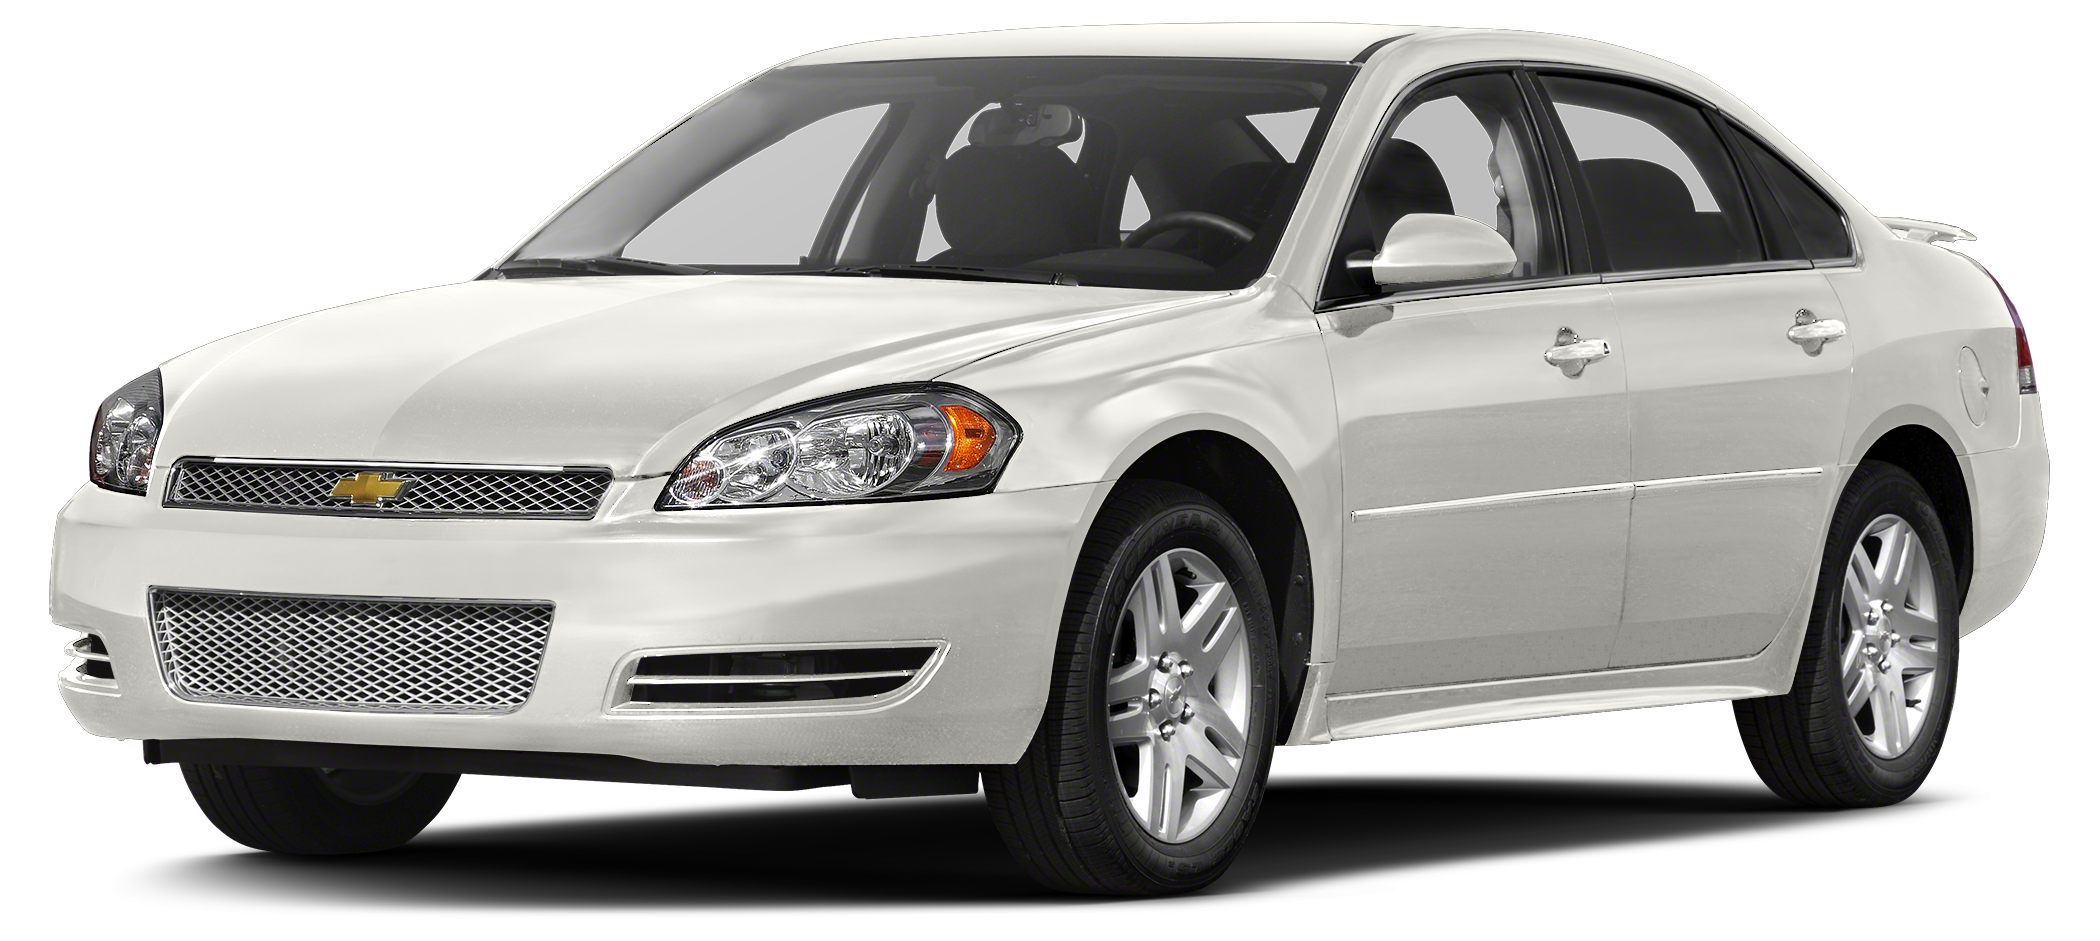 2015 Chevrolet Impala Limited LT Miles 35274Color White Stock 152399 VIN 2G1WB5E30F1152399